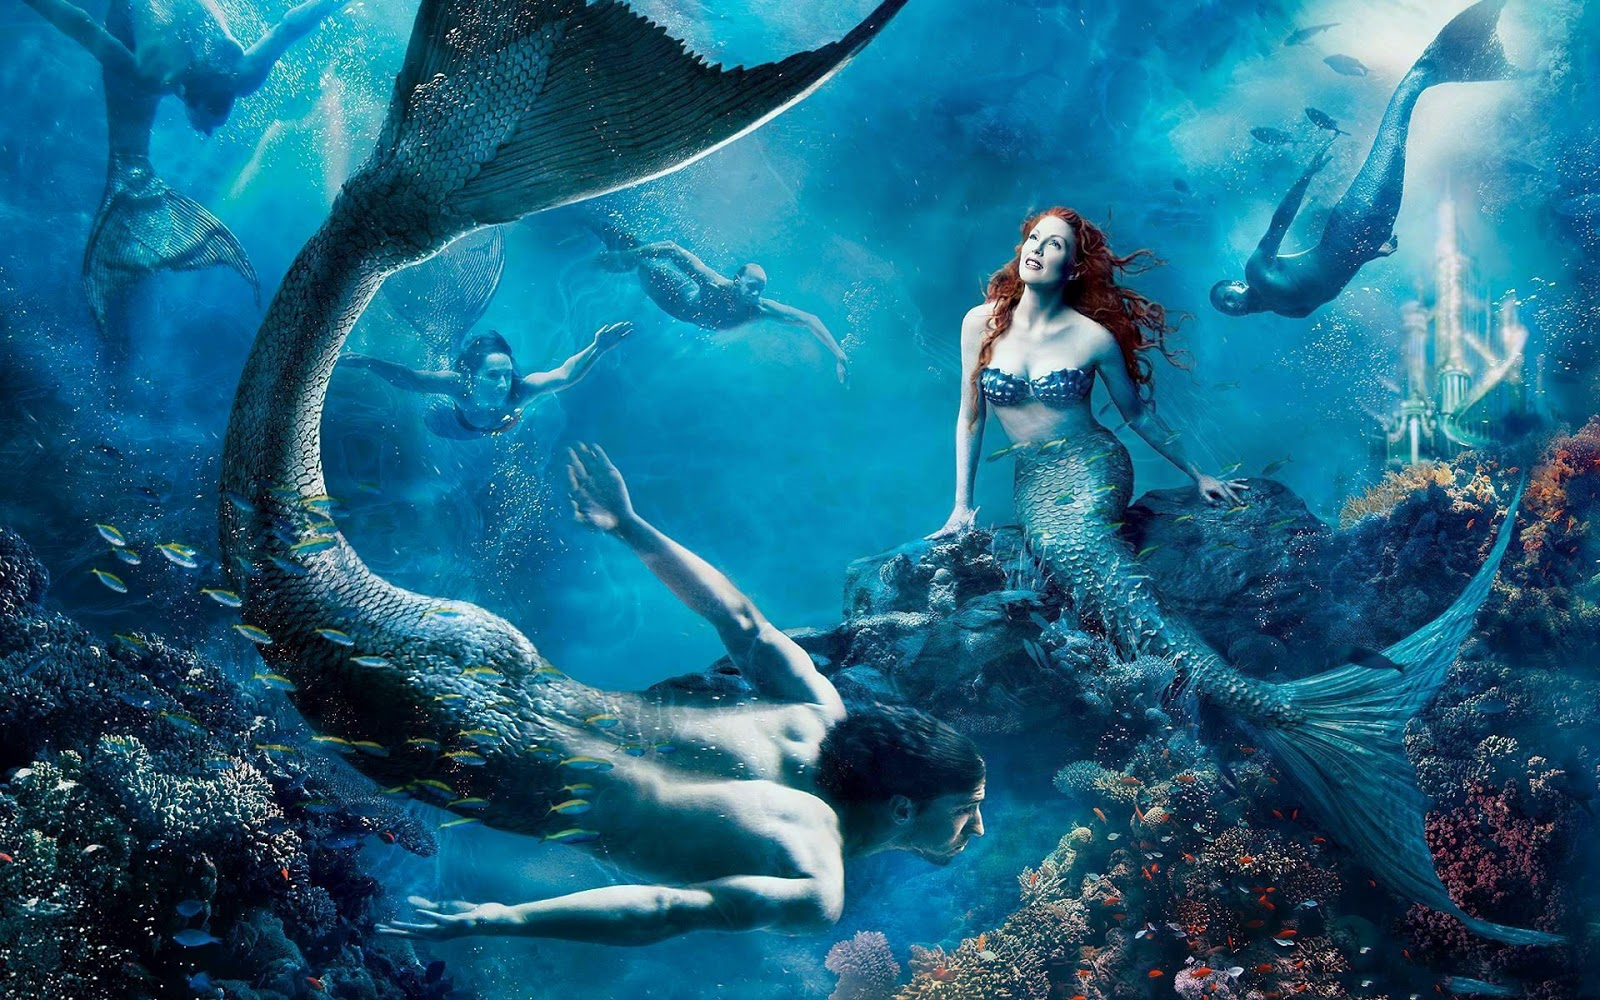 Mermaid-photoshoot-underwater-in-sea-with-coral-reef-images-HD-pictures.jpg